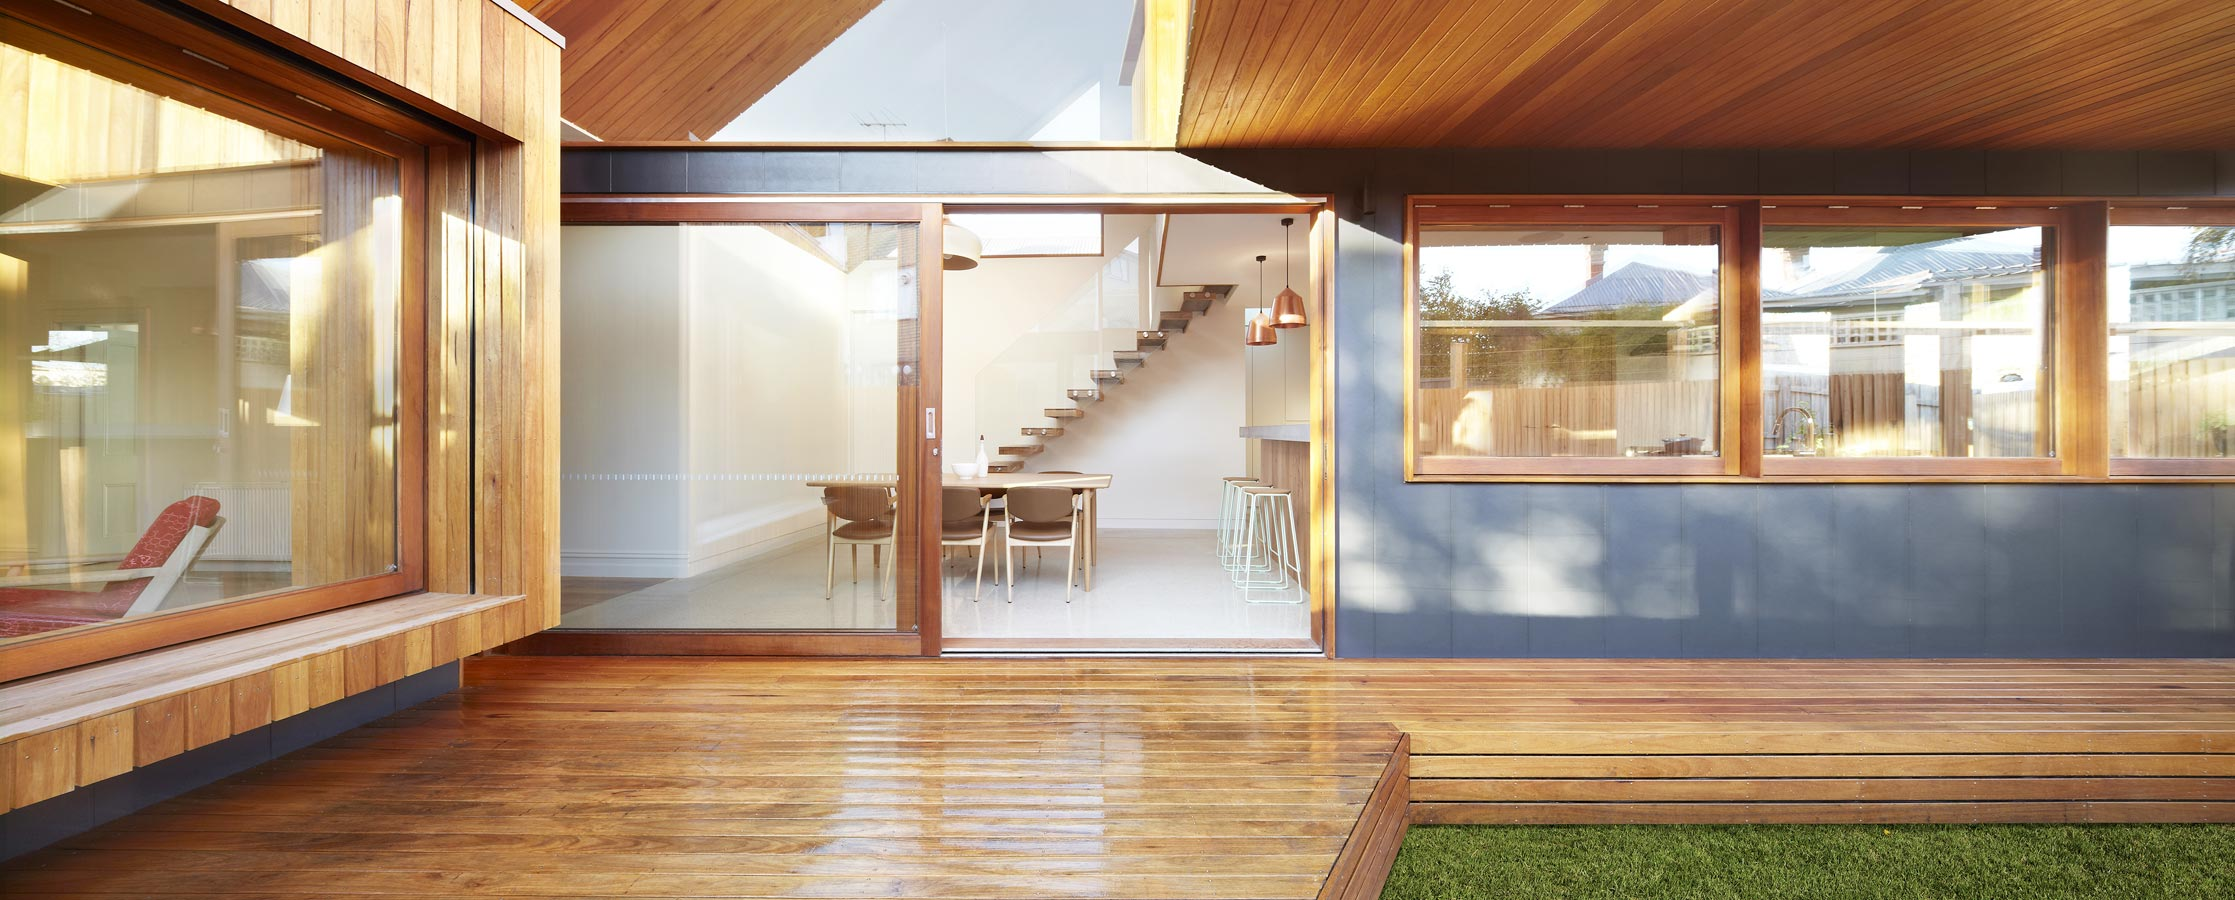 Overend Constructions, Fenwick, JFA, exterior view to dining and stairs, timber decking, large glass doors and windows